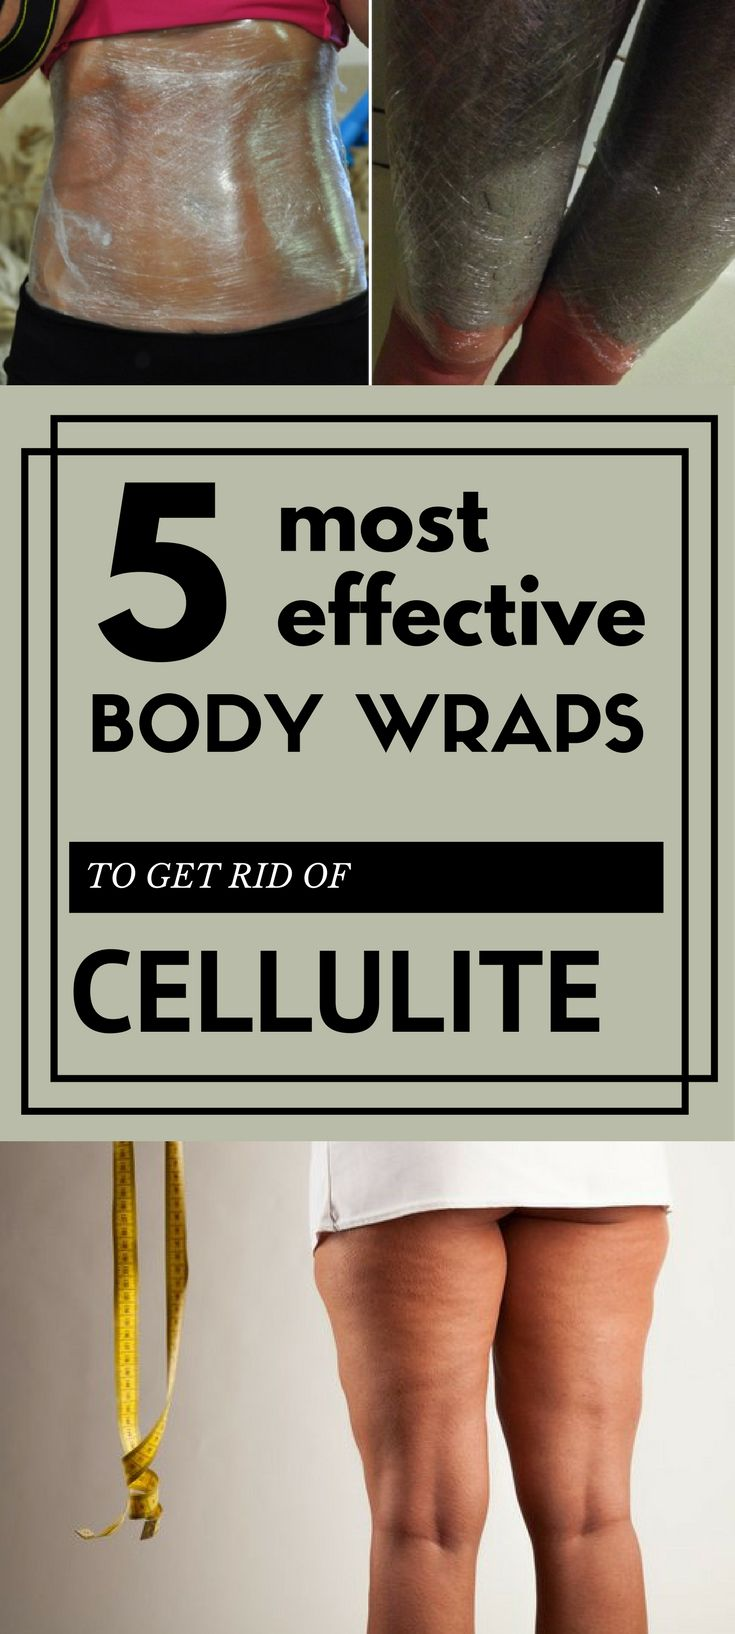 5 most effective body wraps to get rid of cellulite.